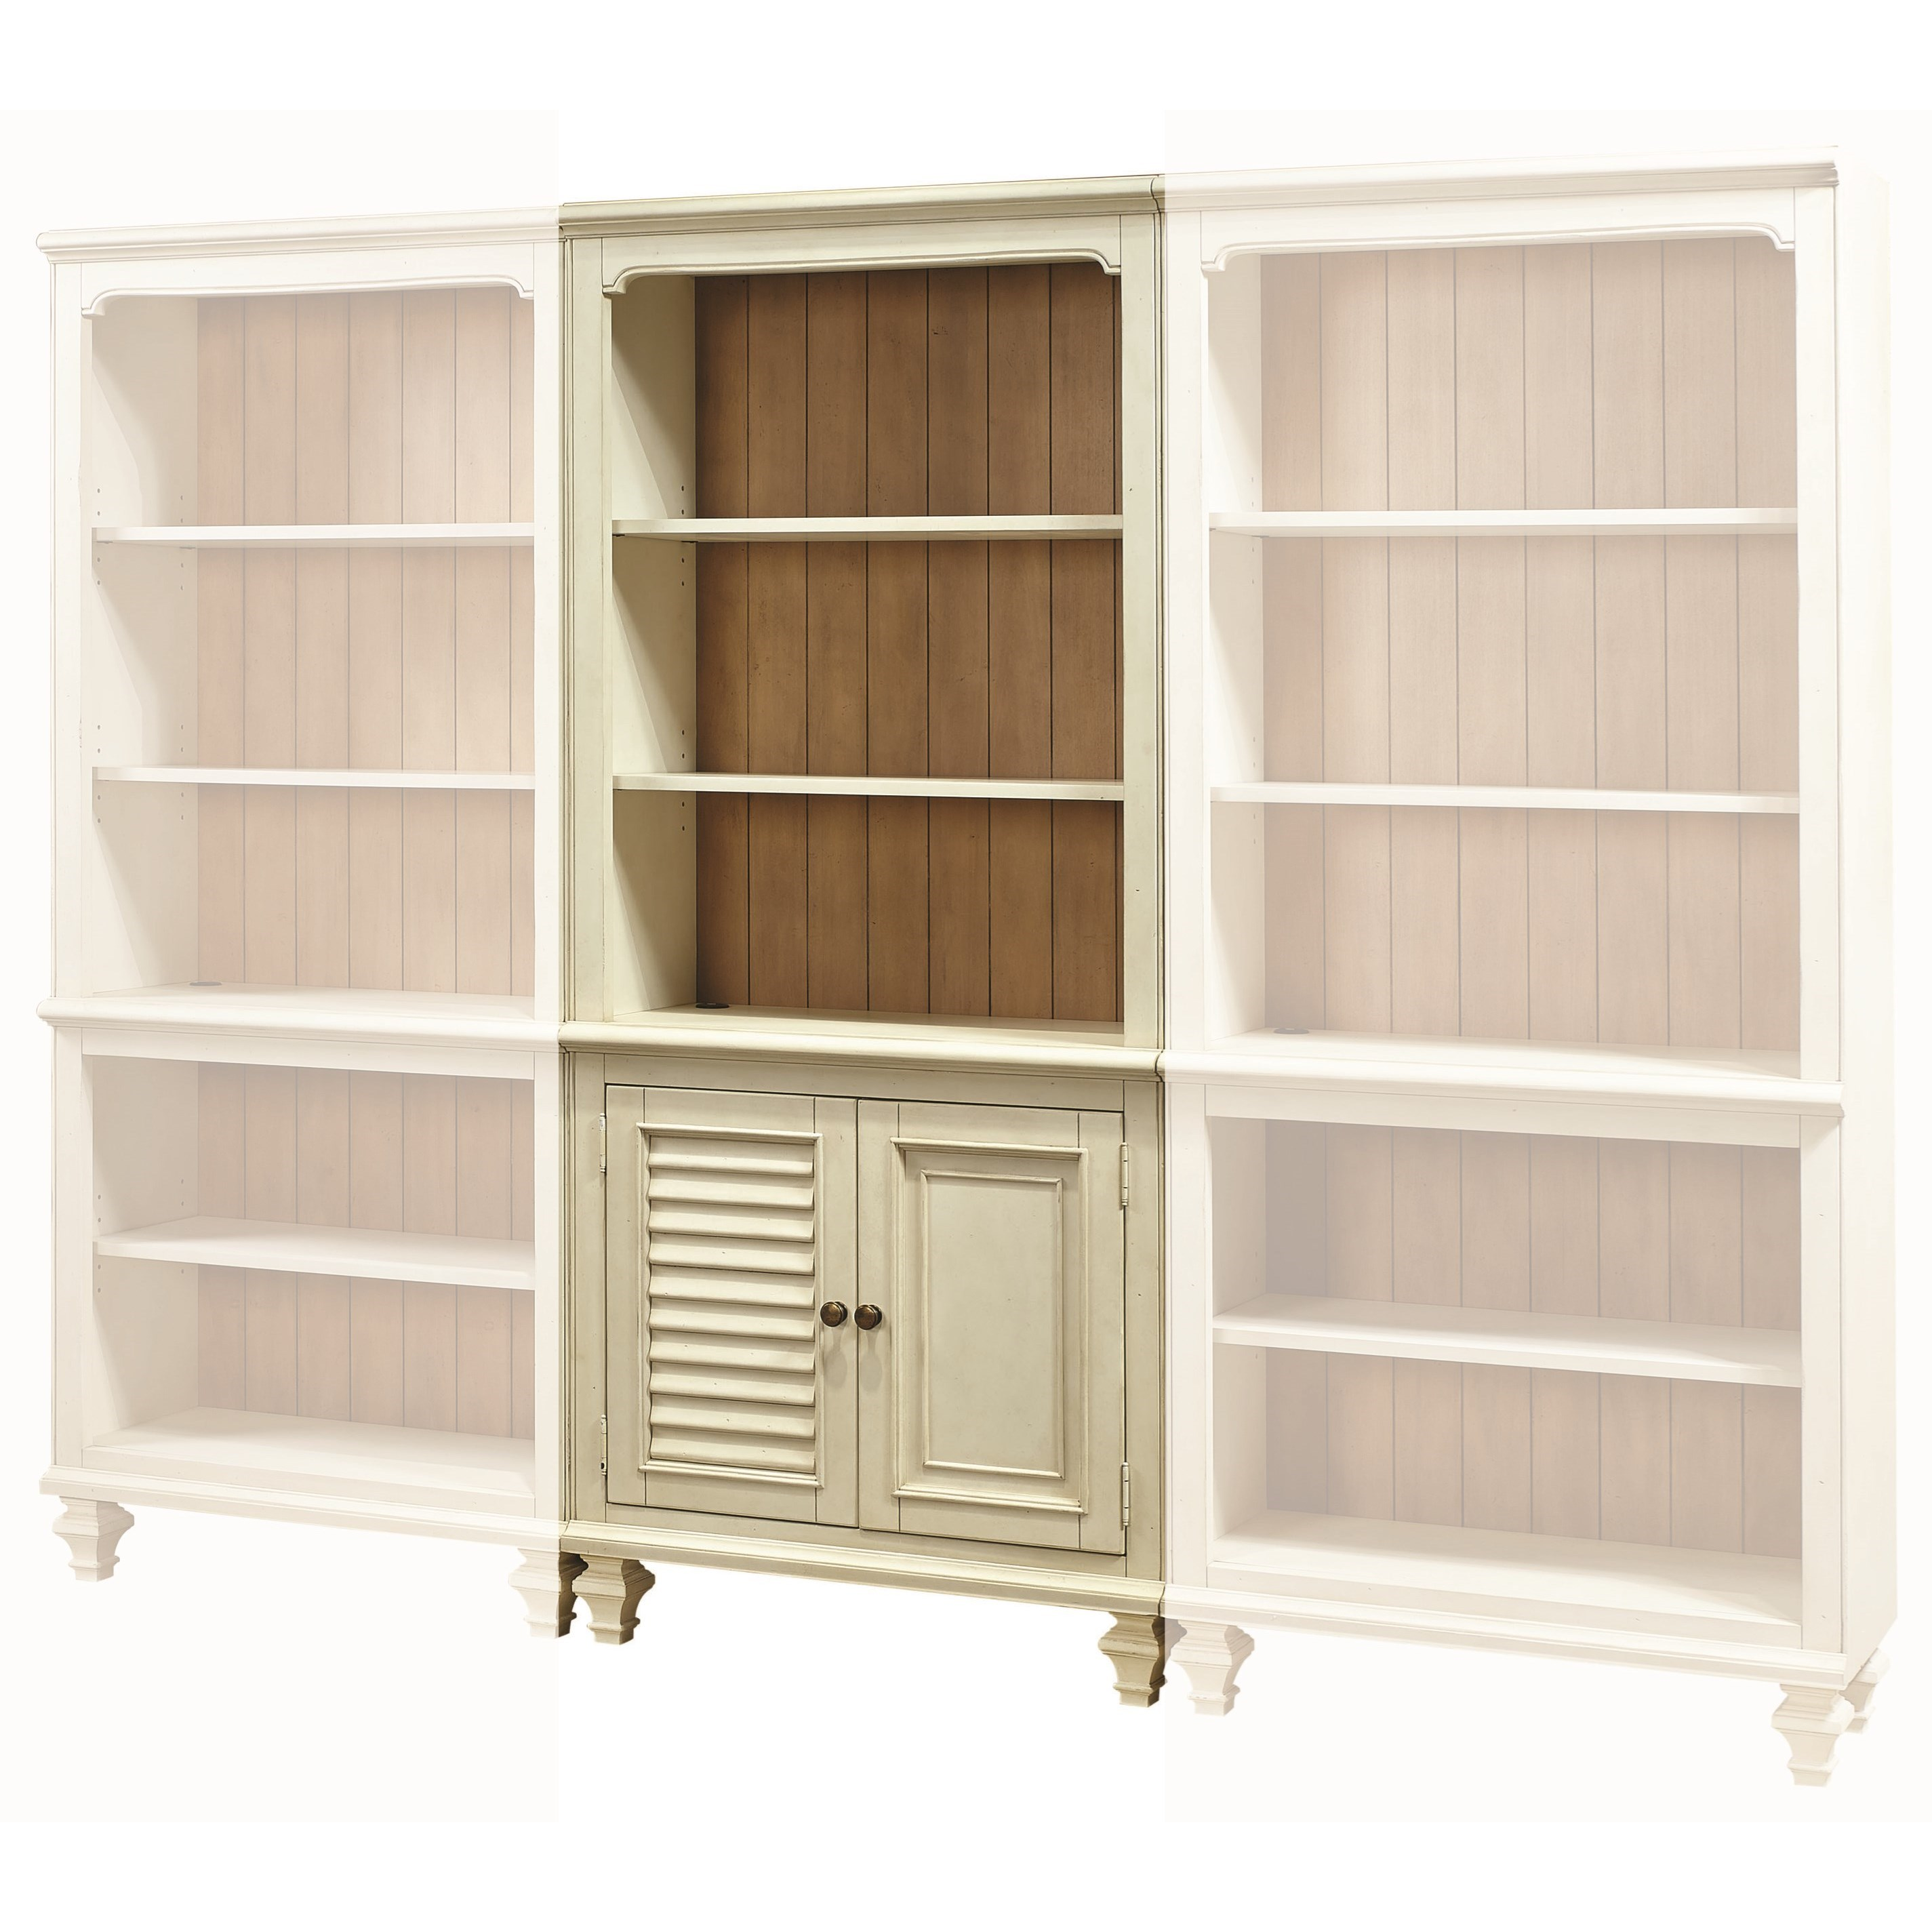 Aspenhome Cottonwood Bookcase - Item Number: I67-332